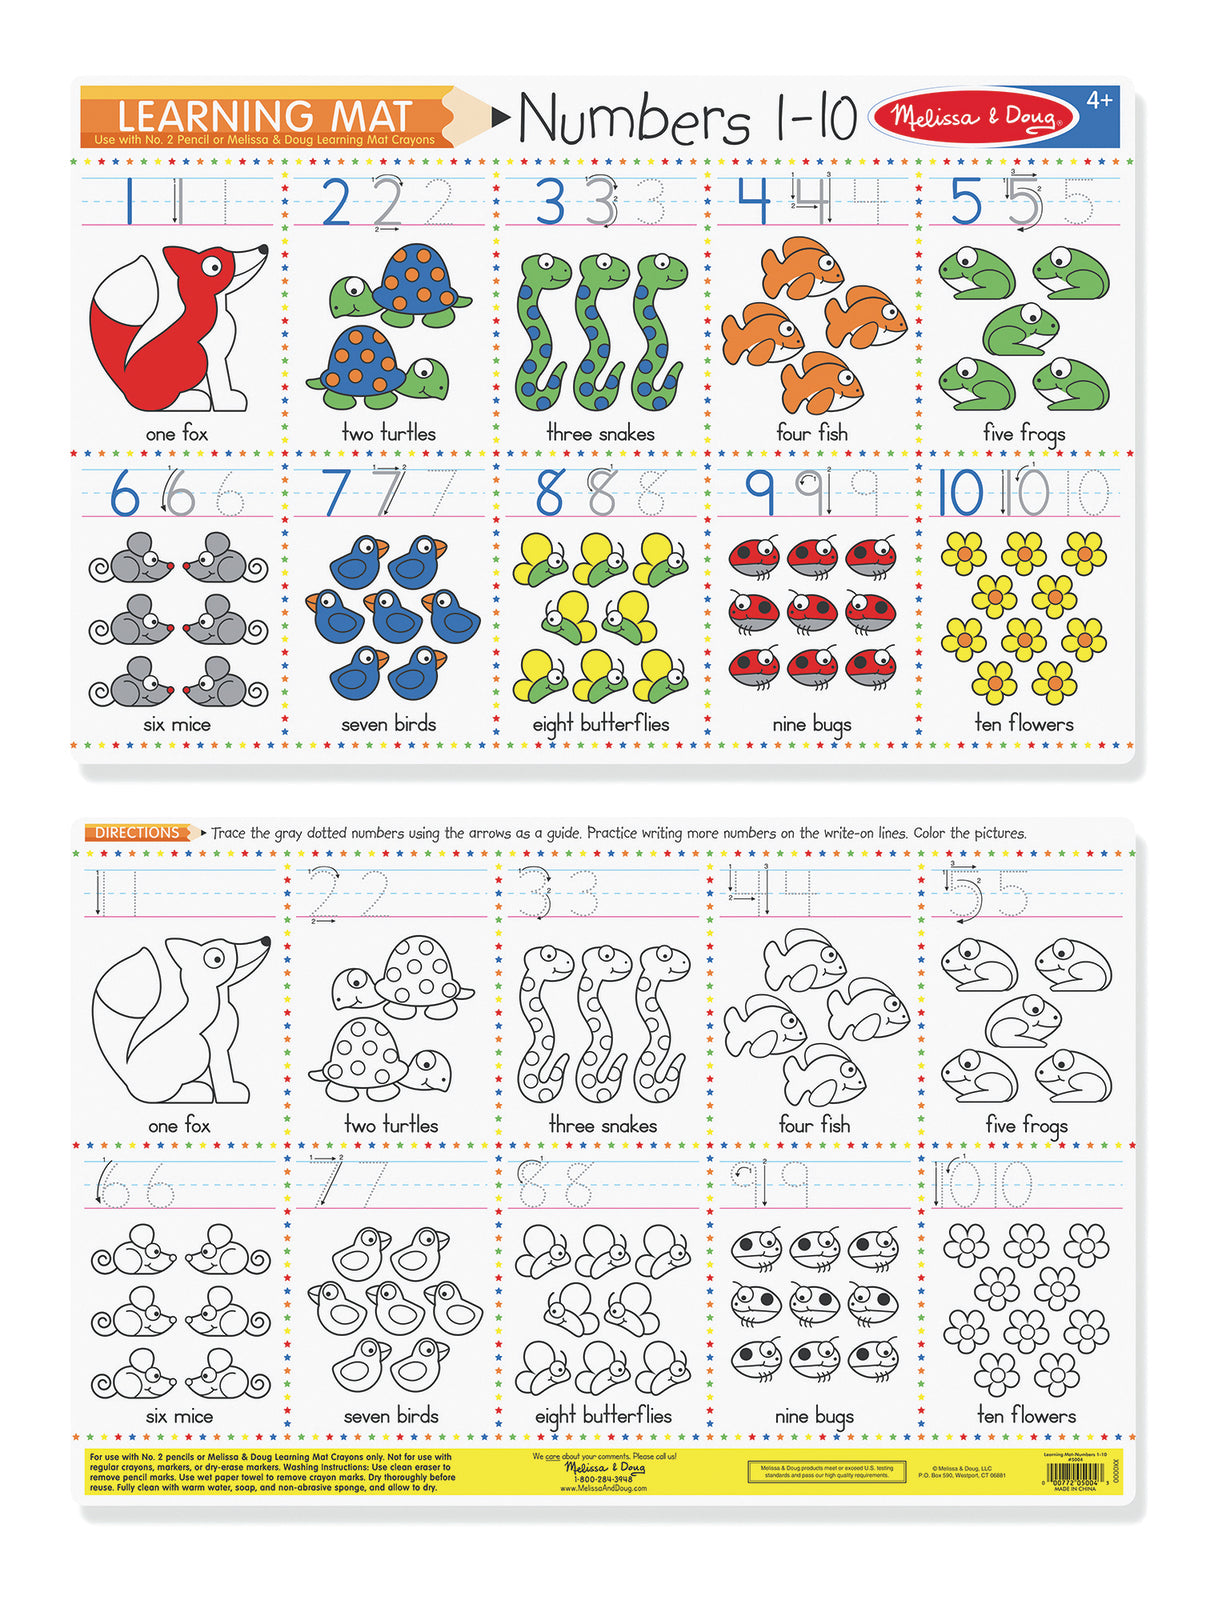 M&D Learning Mat Numbers 1-10